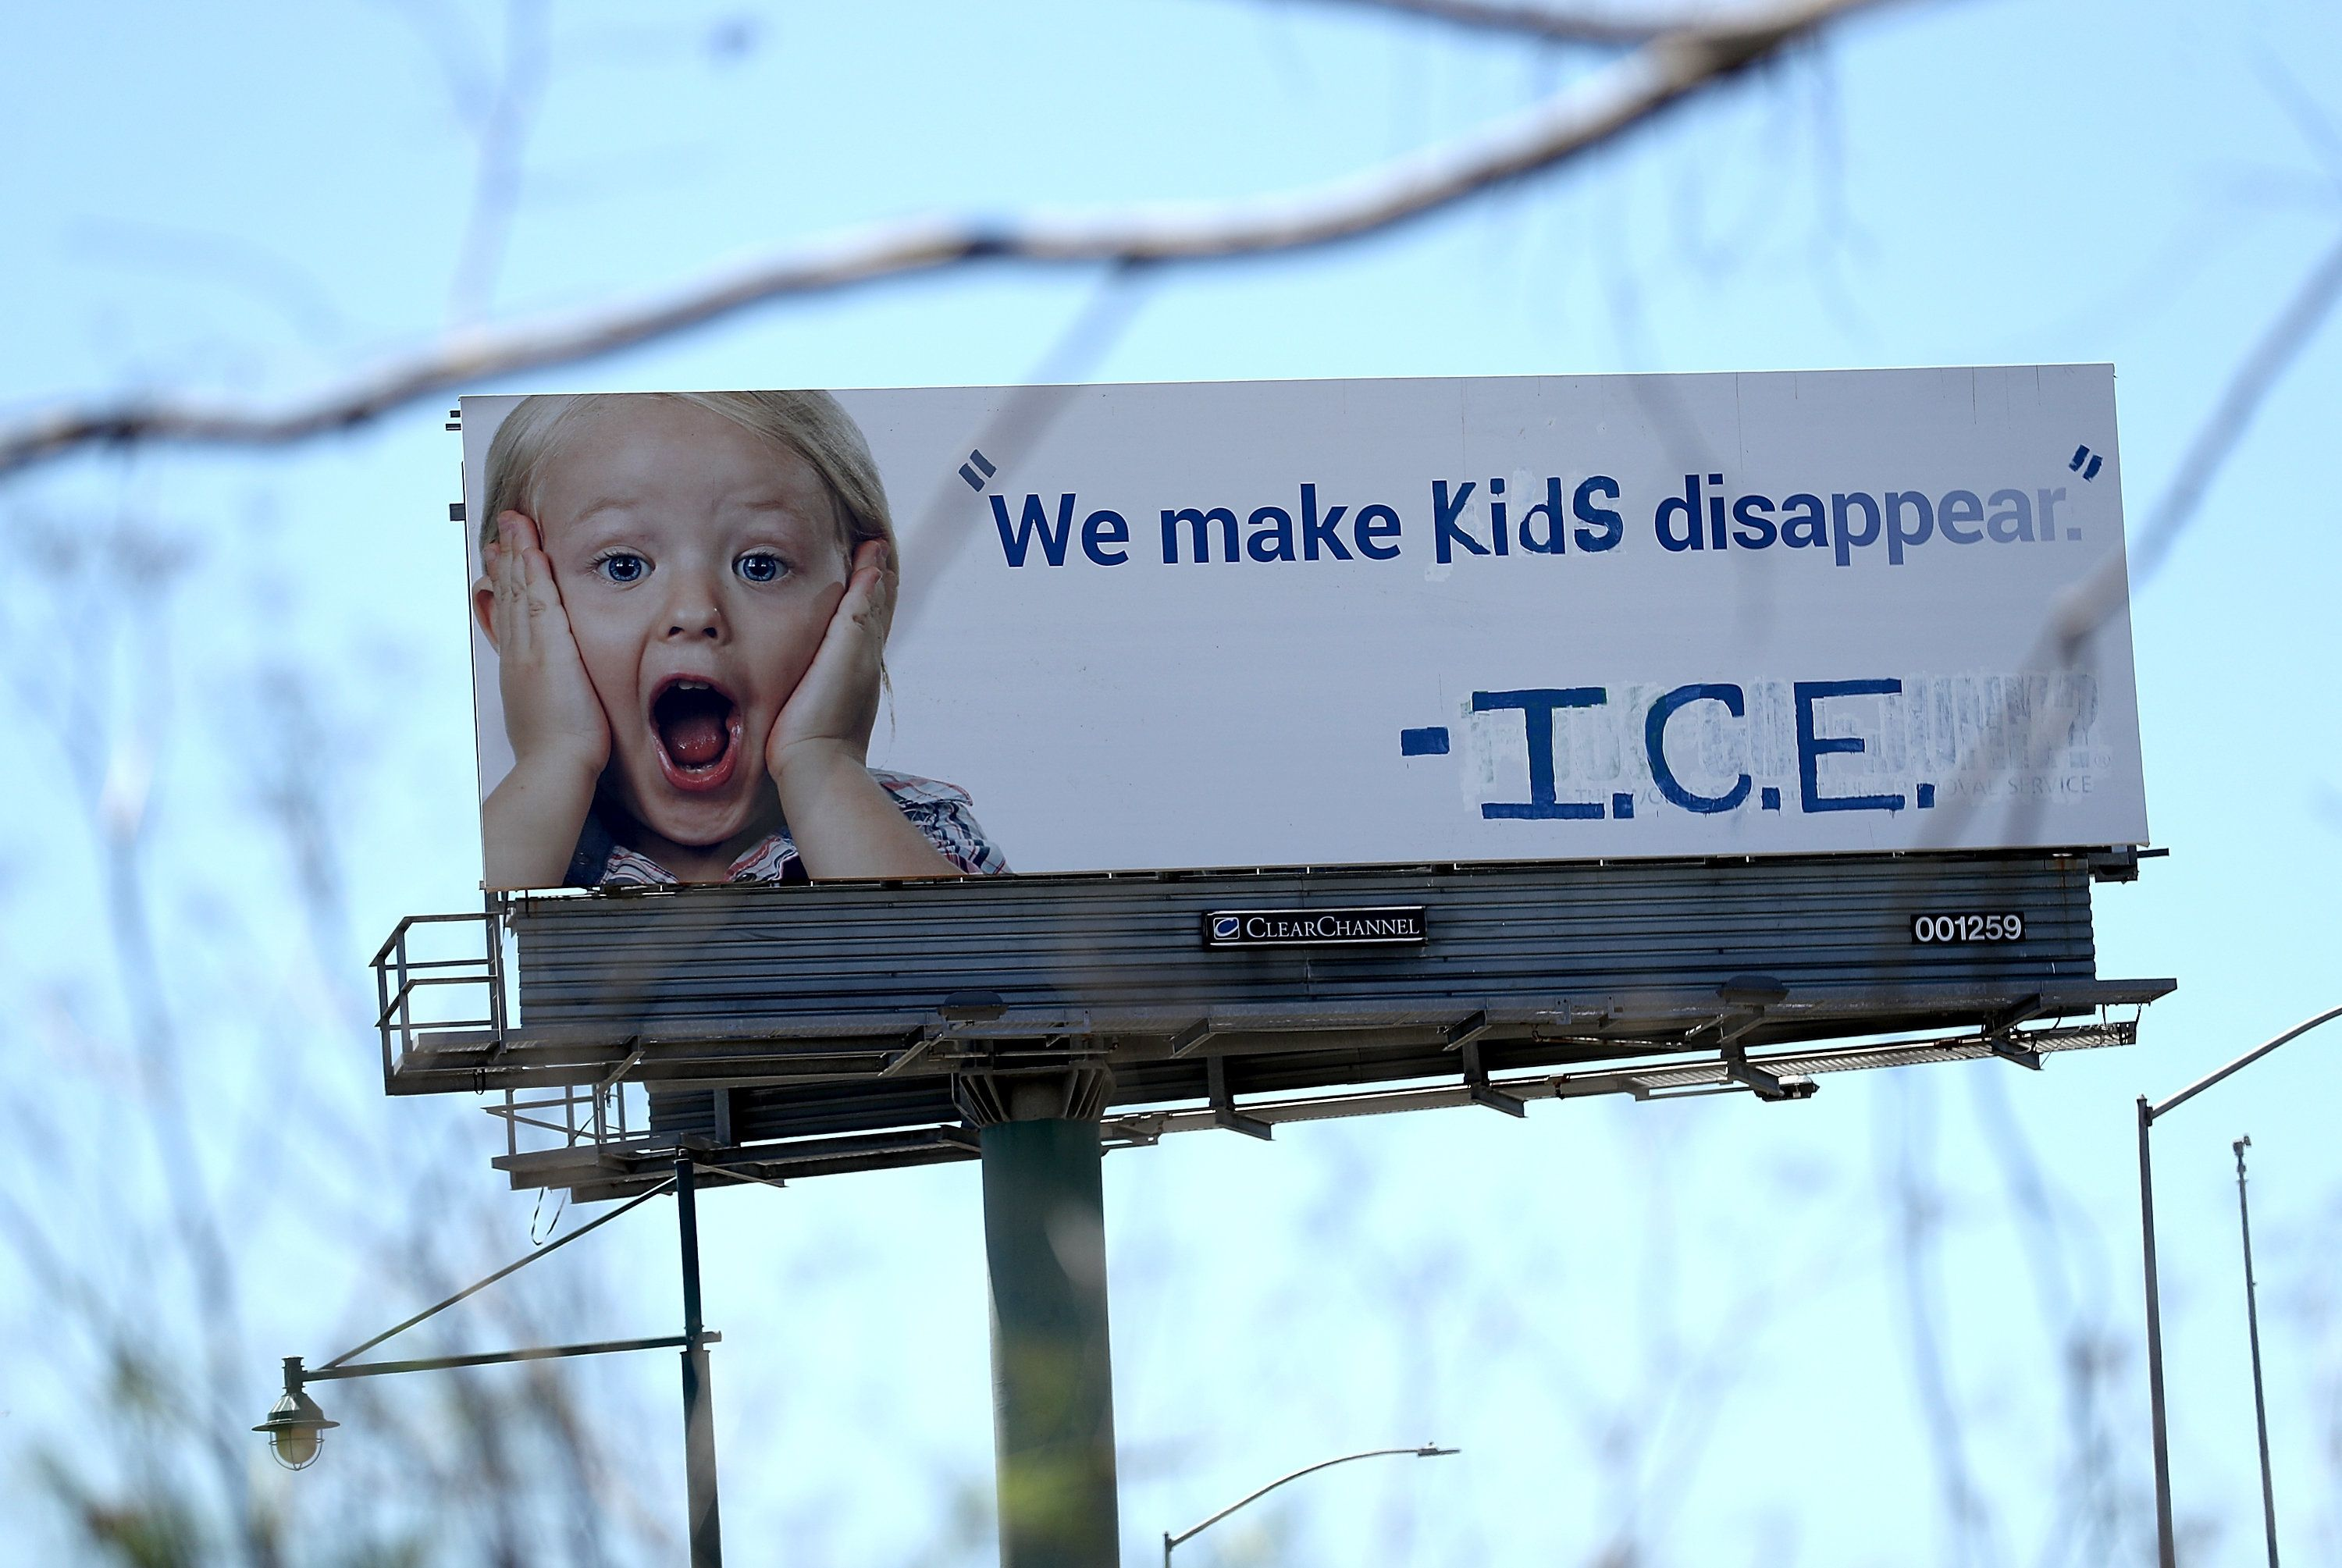 EMERYVILLE, CA - JUNE 21:  A vandalized 1-800-GOT-JUNK billboard shows a message in in protest with the Immigration and Customs Enforcement (ICE) and their participation in separating children from their parents trying to enter the U.S. from Mexico on June 21, 2018 in Emeryville, California. Activist group Indecline vandalized a billboard along Interstate 80 protesting the zero-tolerance policy by the Trump administration of separating children from their parents while the parents navigate the court system after being apprehended trying to enter the United States from Mexico.  (Photo by Justin Sullivan/Getty Images)